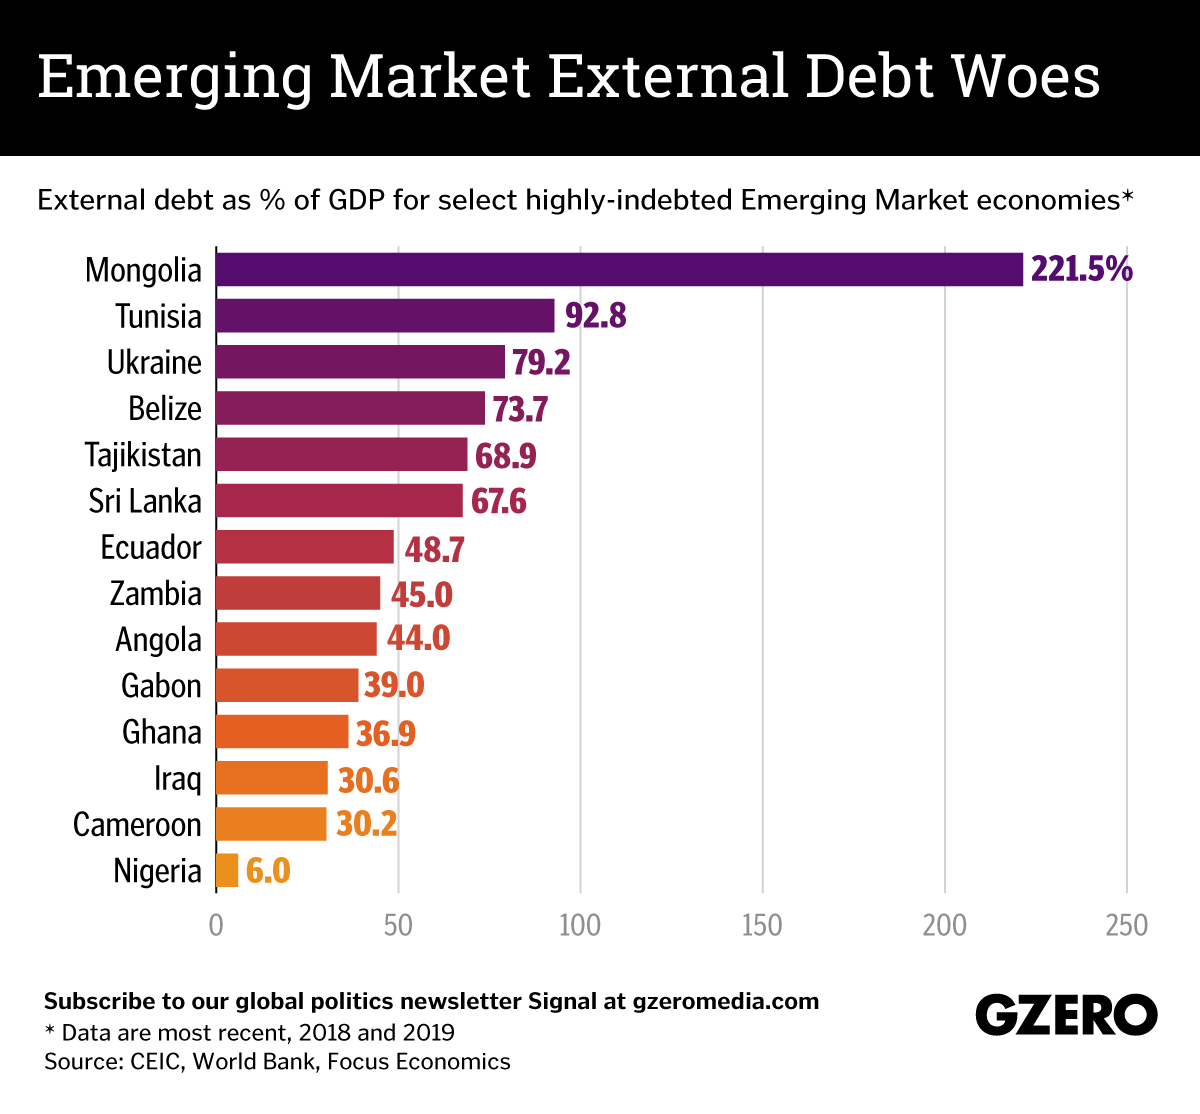 The Graphic Truth: Emerging market external debt woes